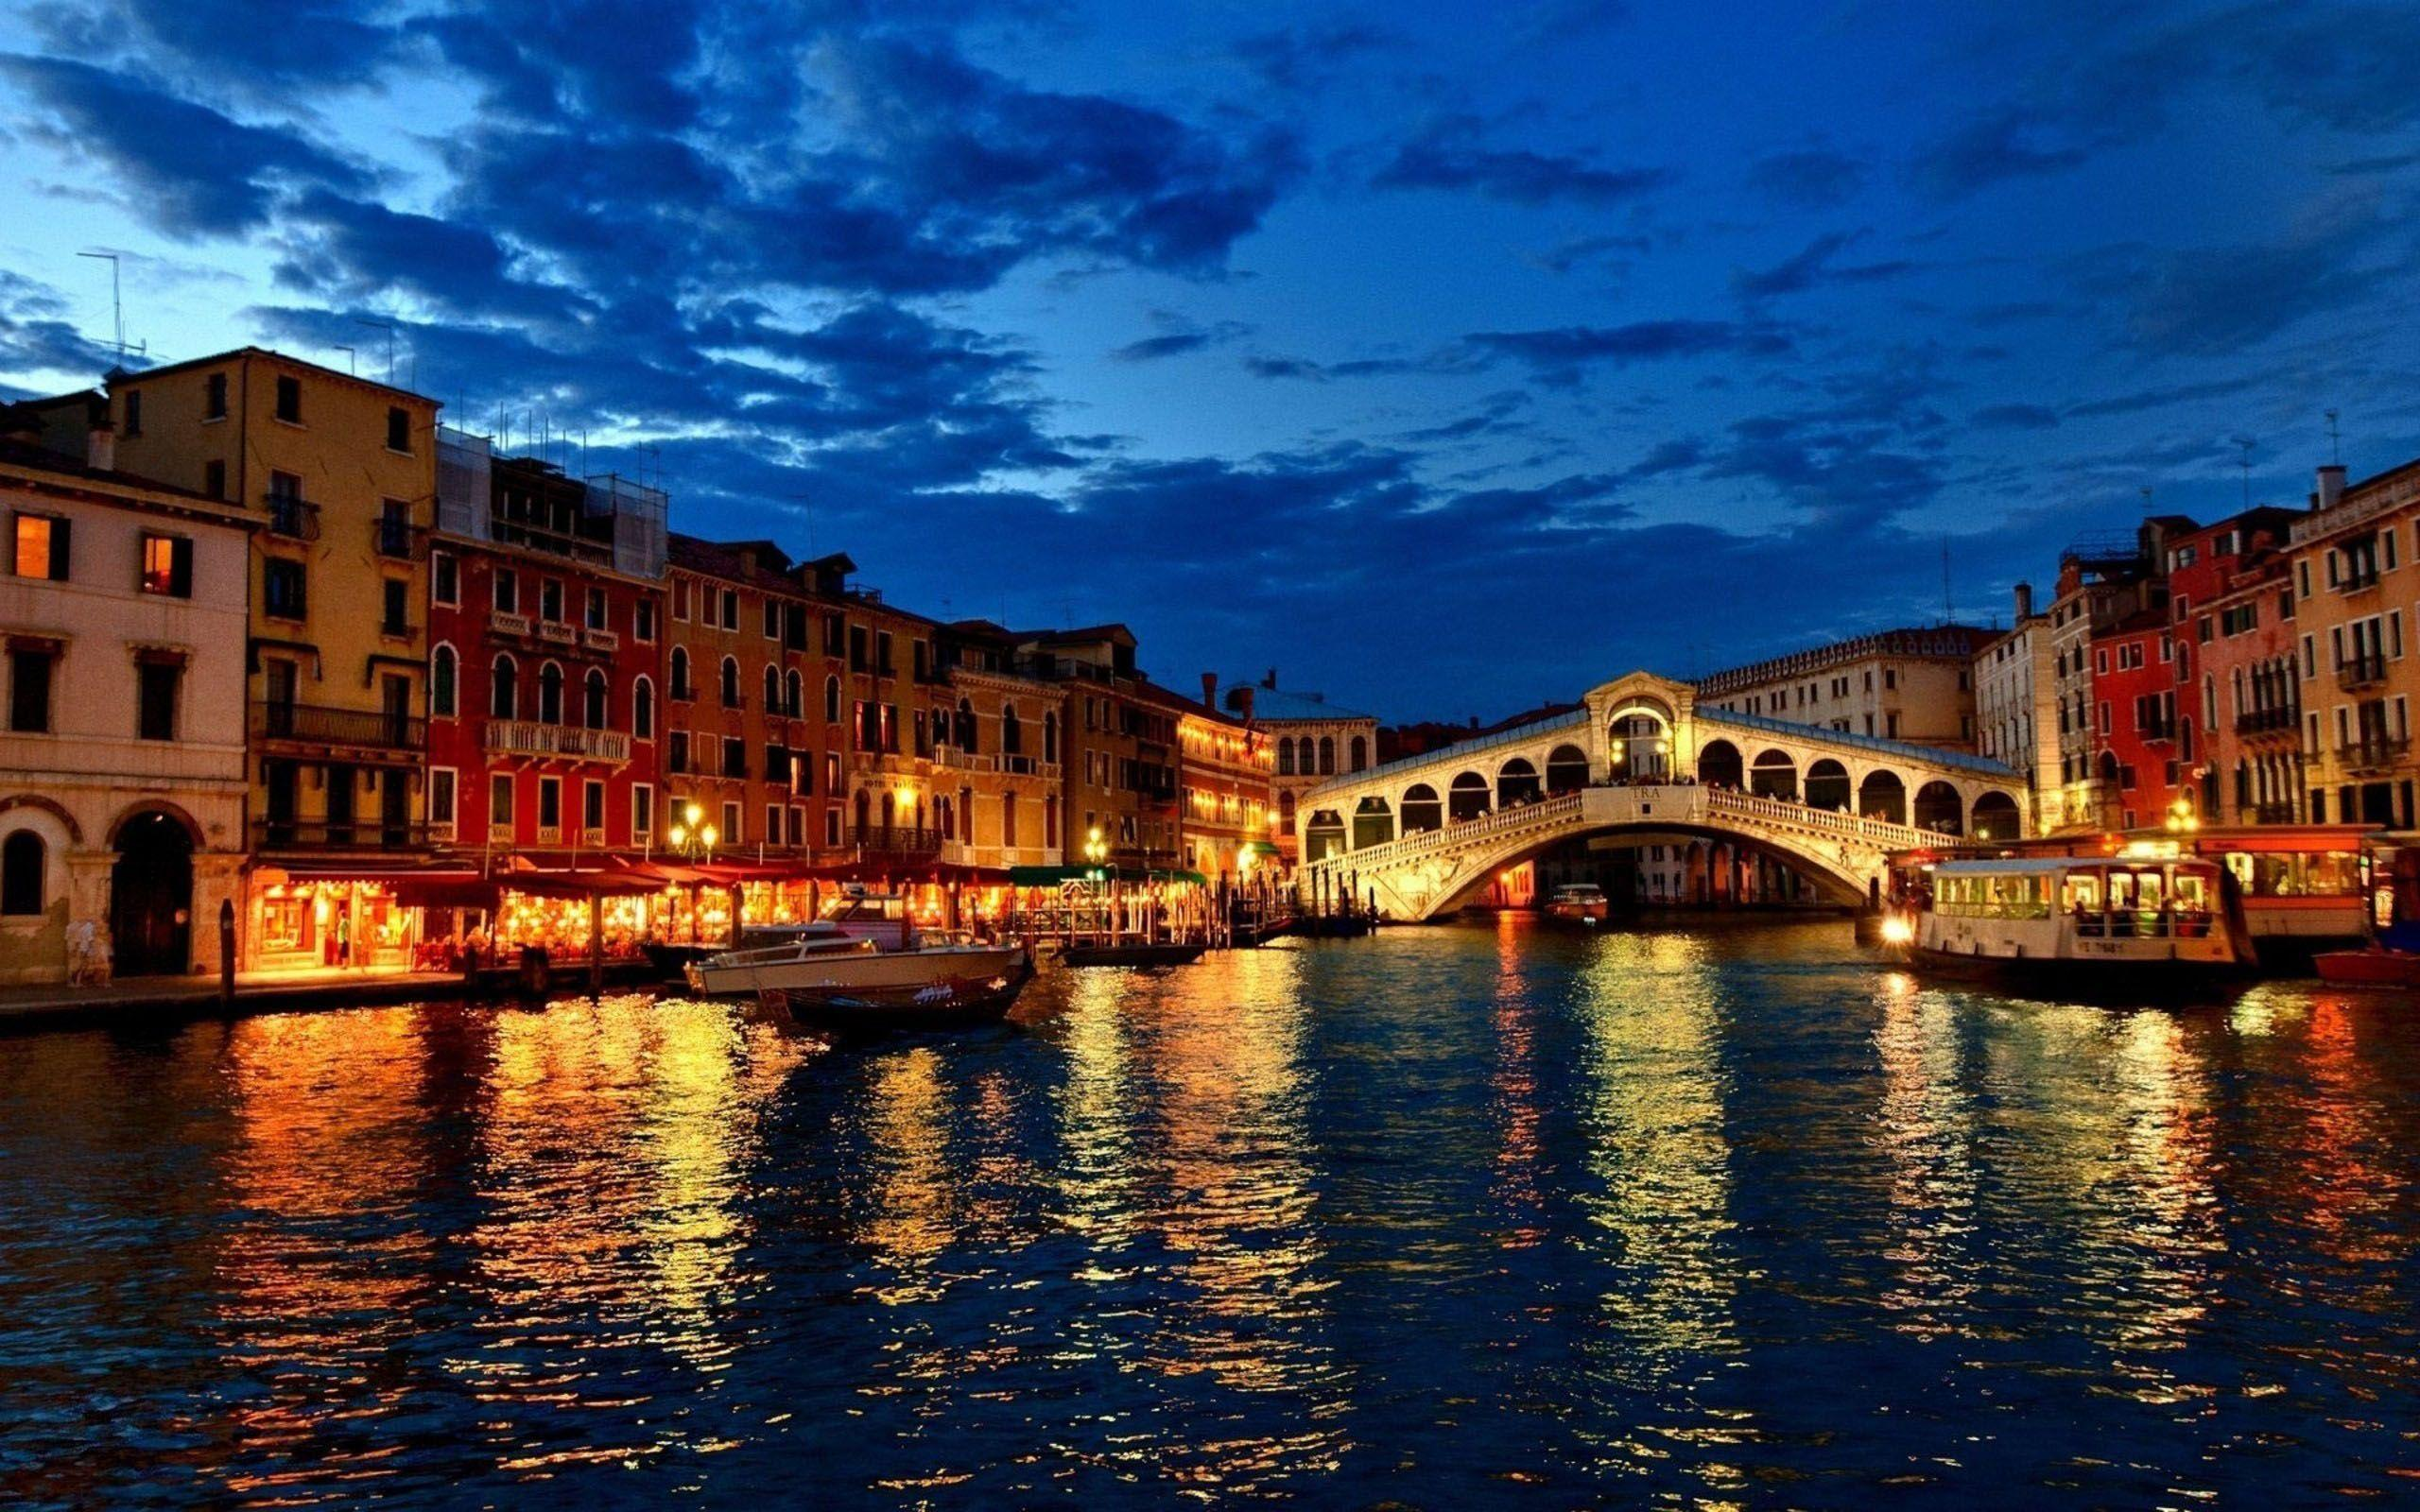 Venice Italy Desktop Wallpaper Photos #zair0 - Ehiyo.